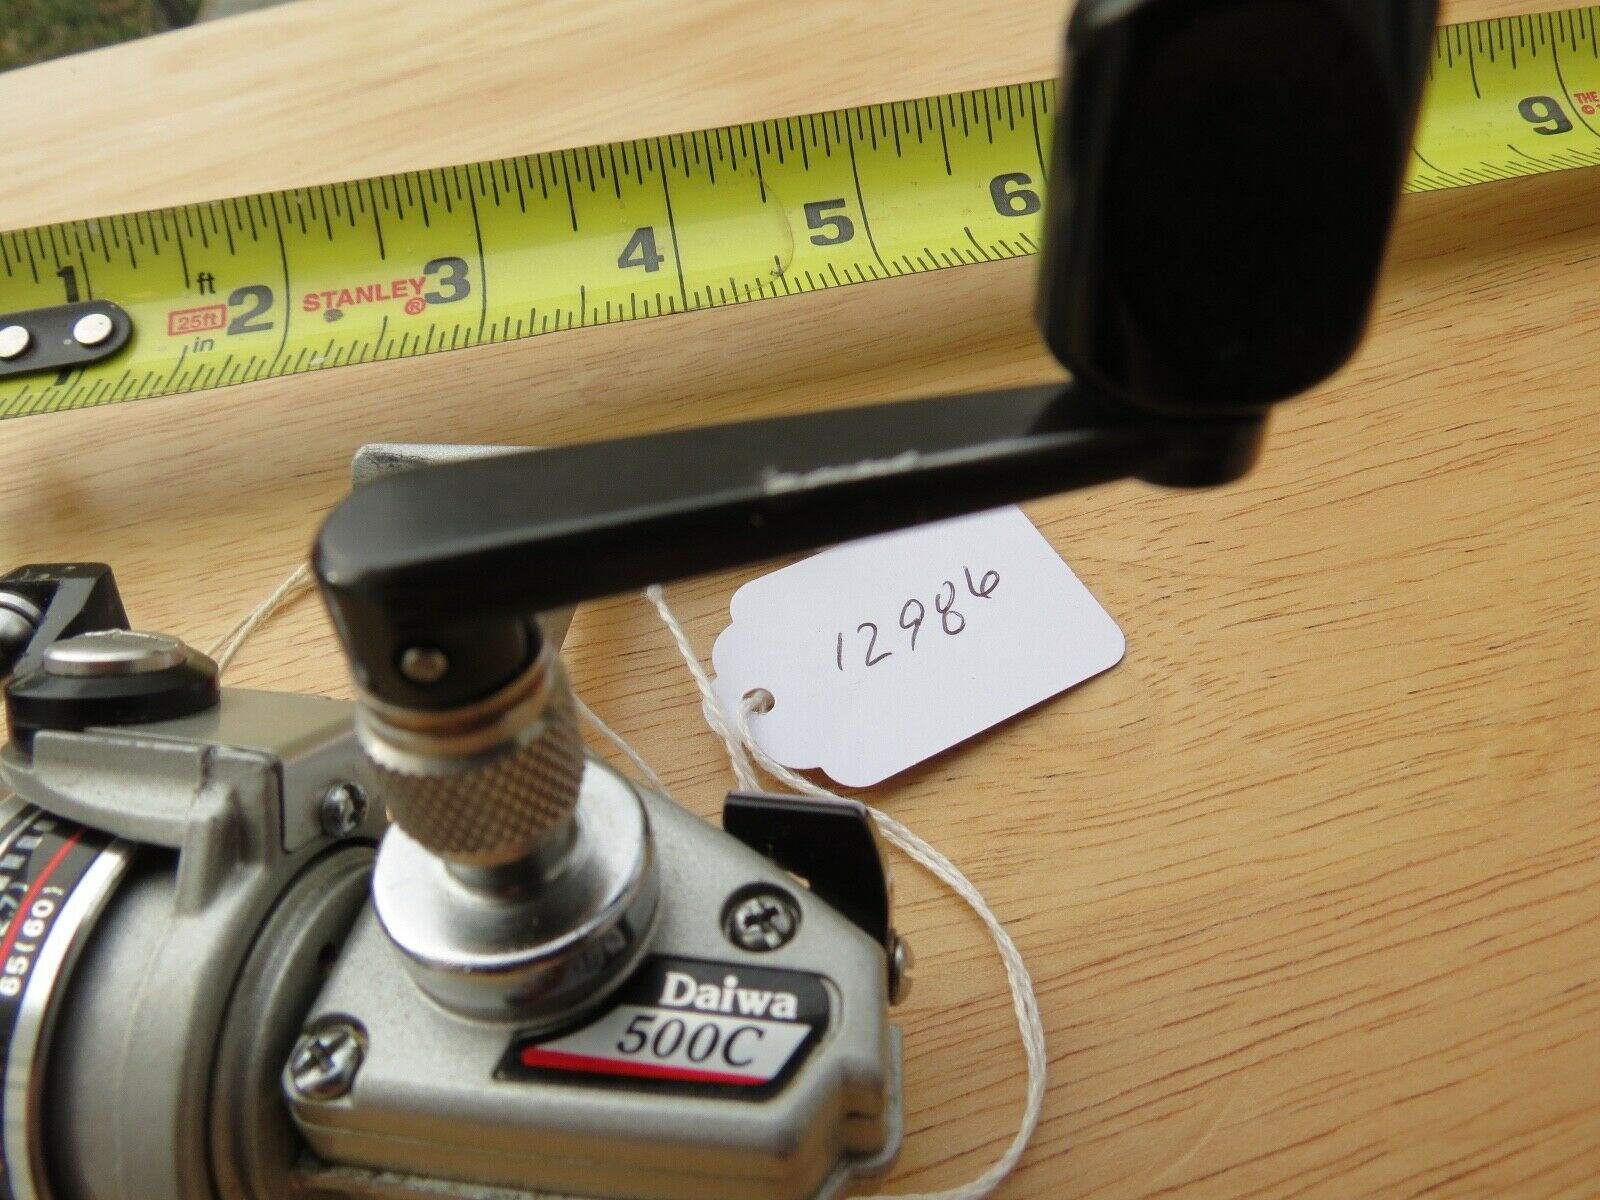 Daiwa 500c trout fishing reel made made made in Japan (lot 12986) 7f16ad